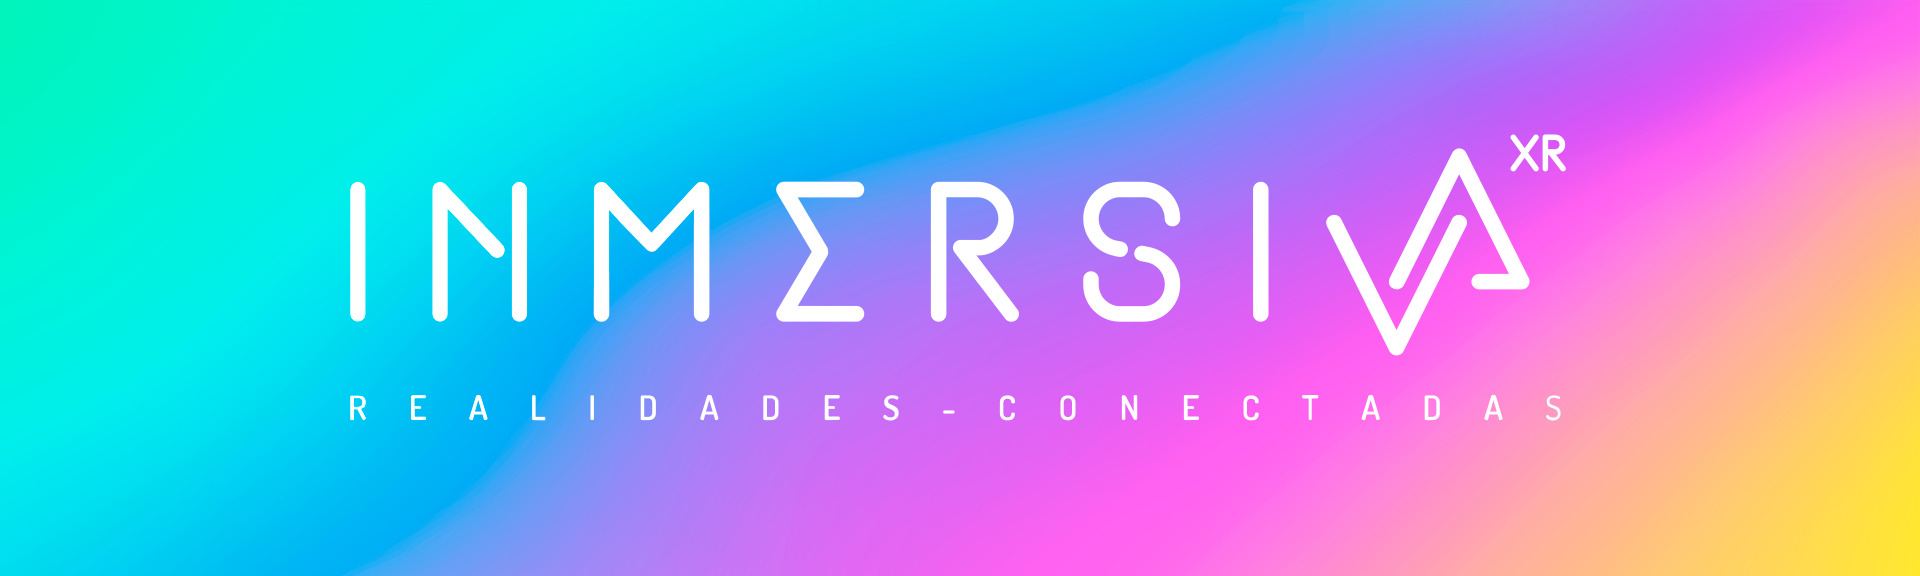 Banner altspace